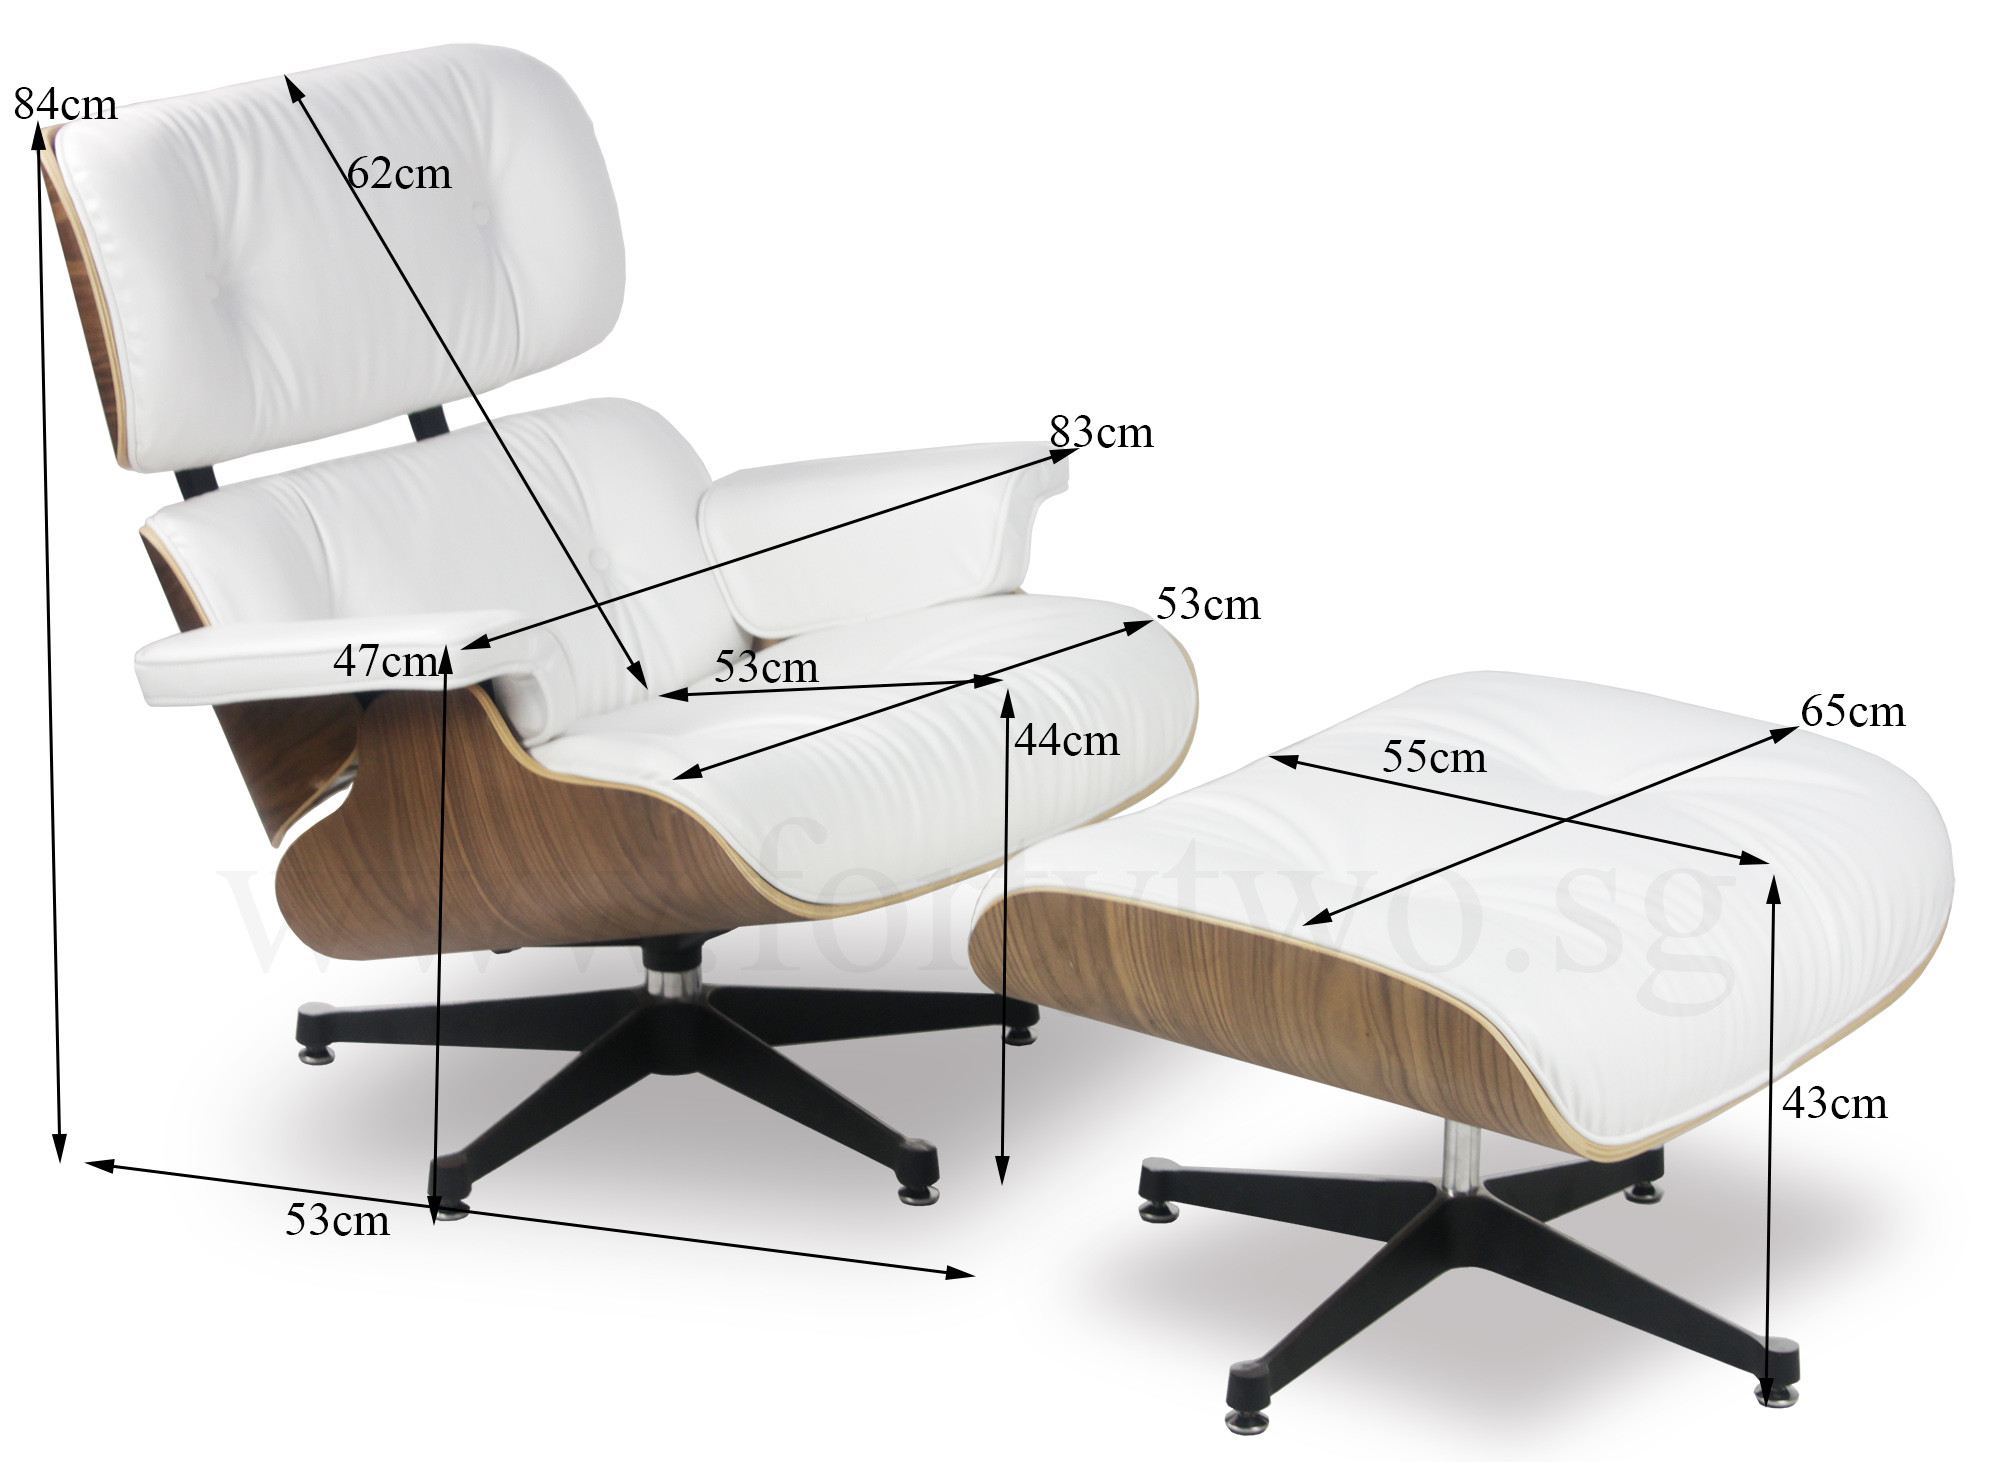 designer replica eames lounge chair white furniture home décor